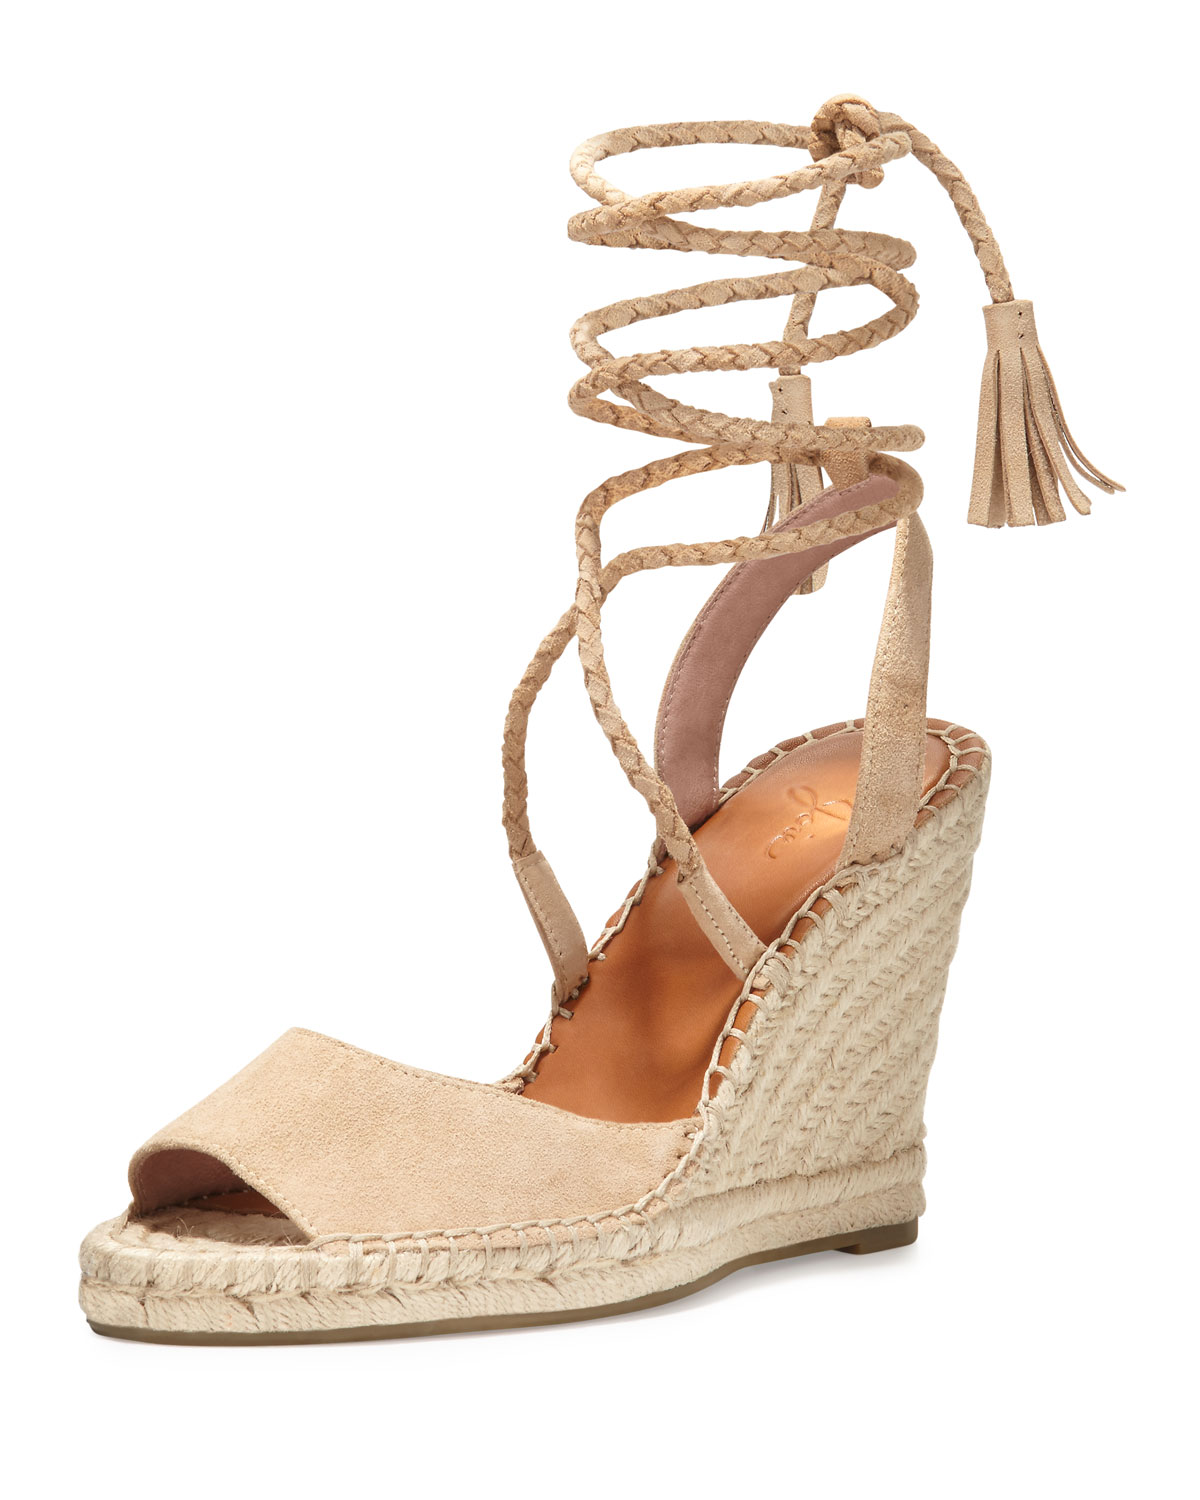 70e001226b9e8 Joie Phyllis Suede Lace-Up Wedge Espadrille Sandal